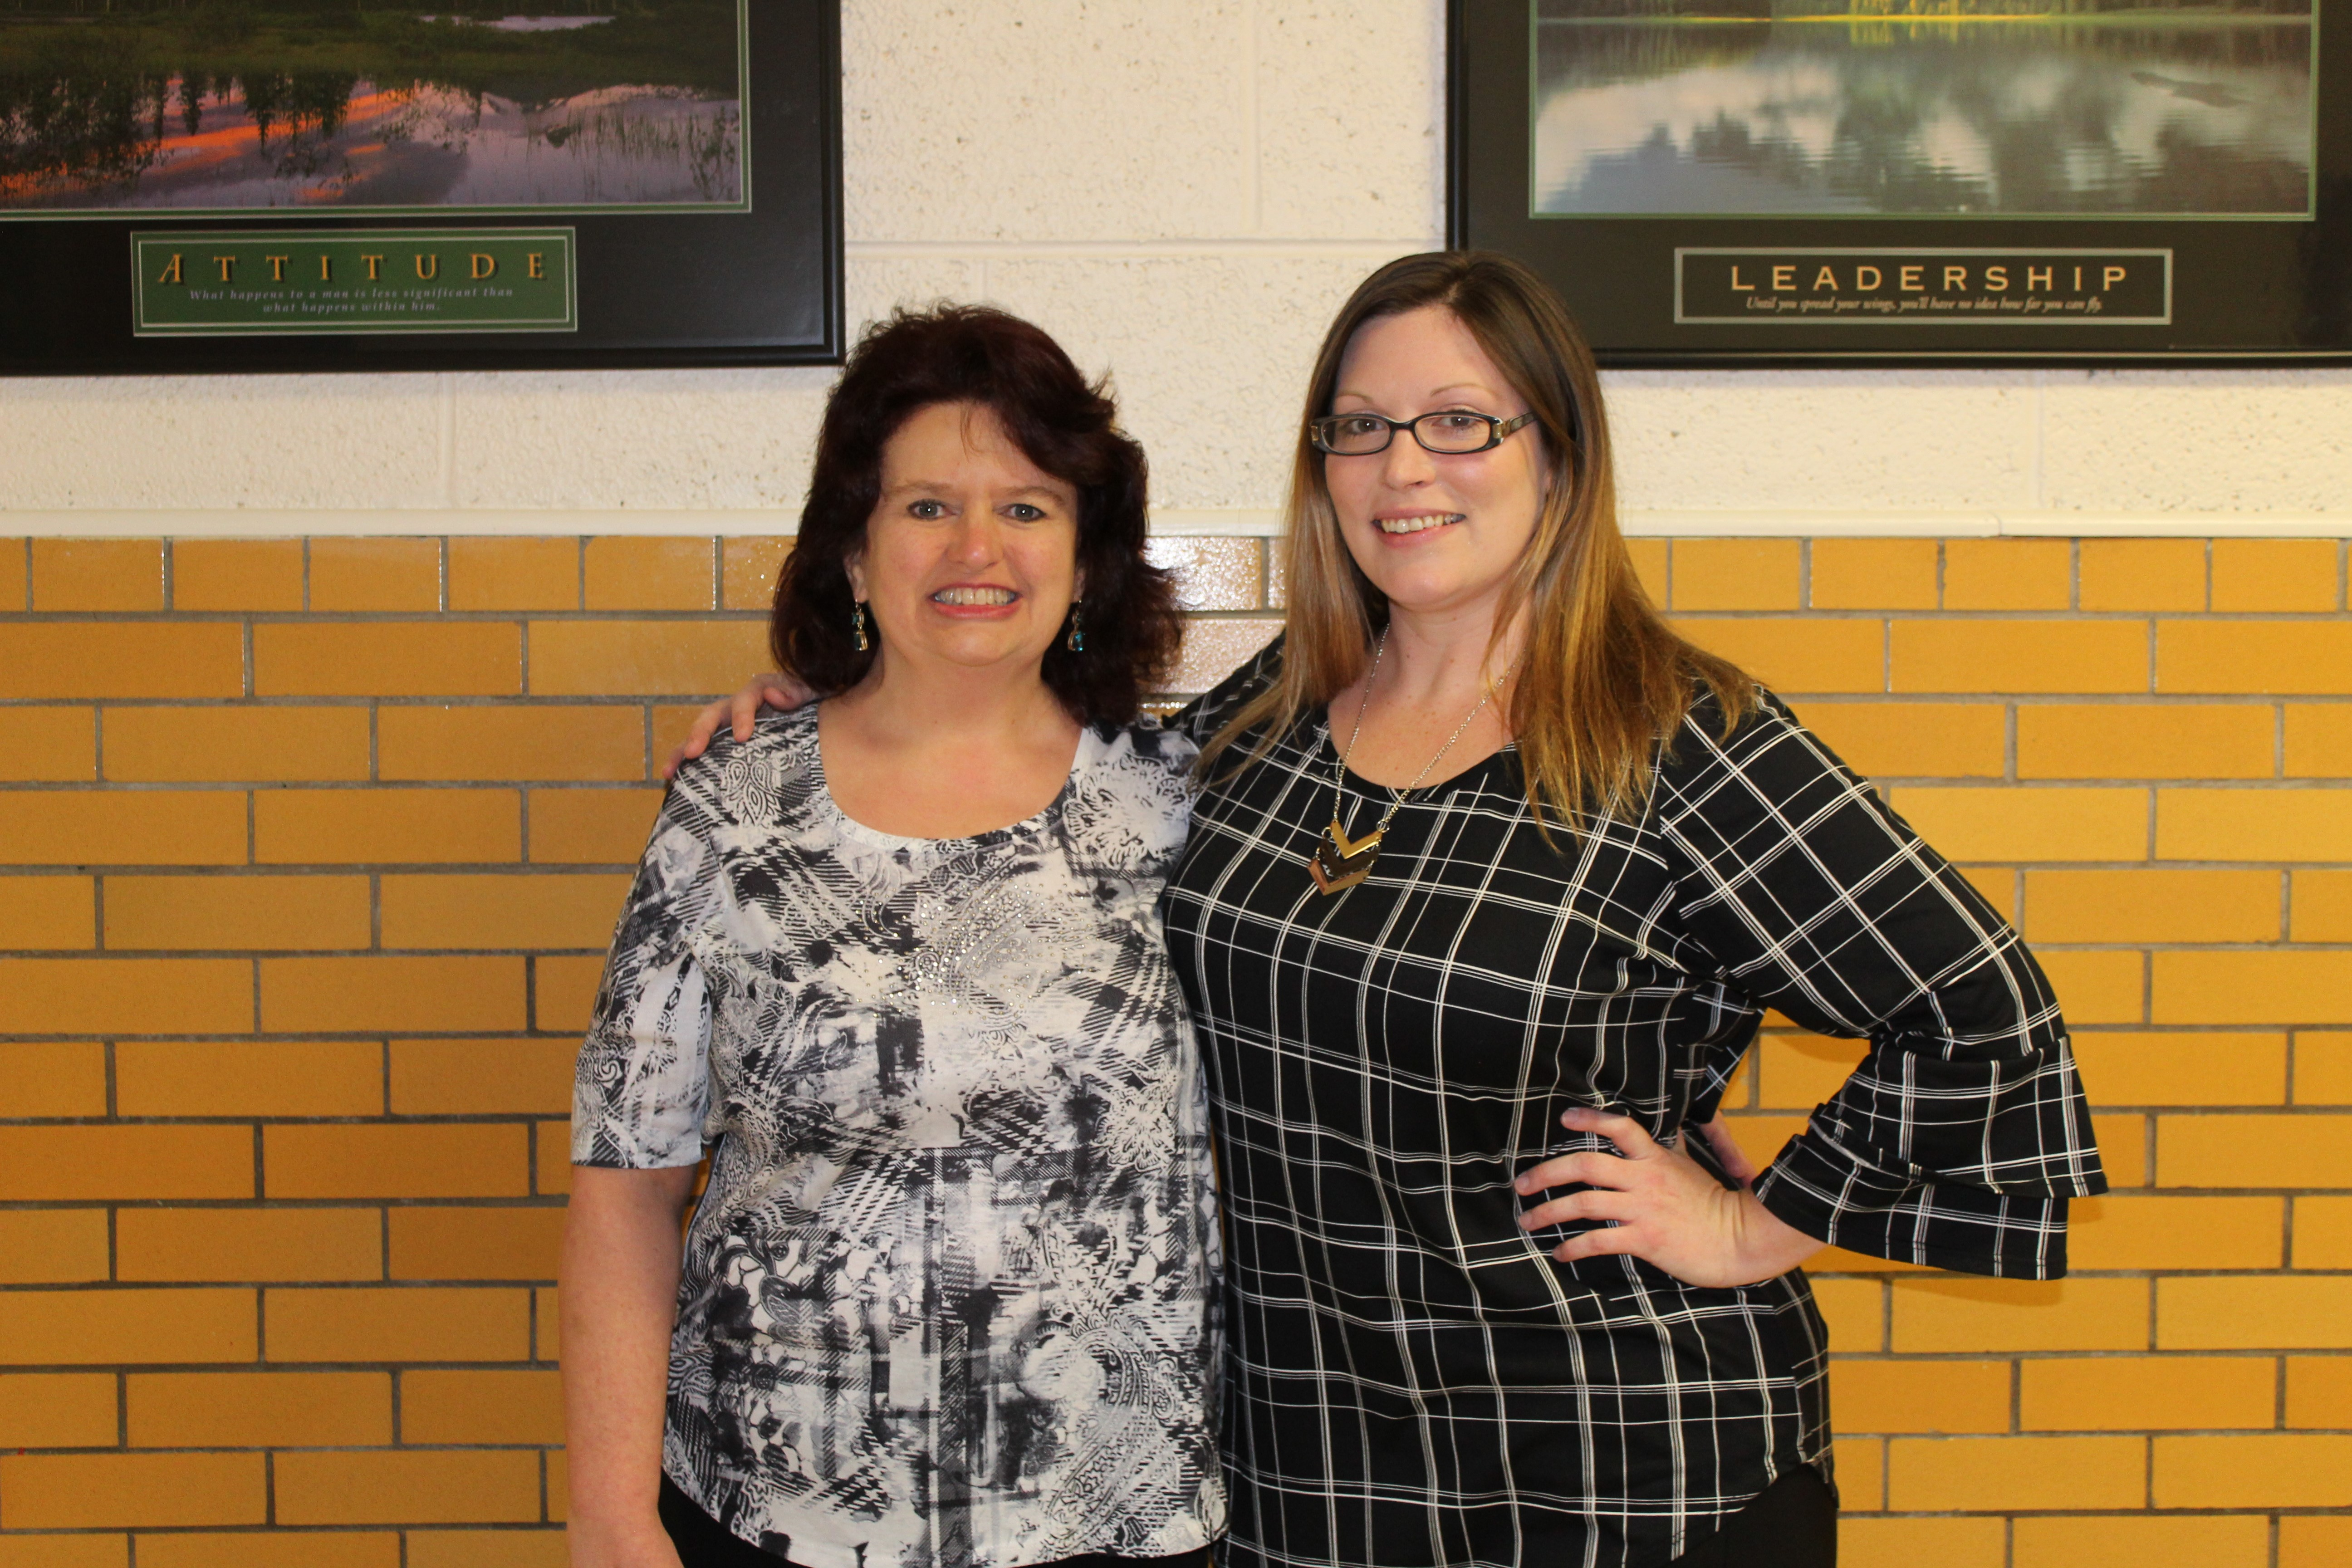 Congratulations to Mountain City Elementary's 2018-2019 Teachers of the year: Paula Stewart and Faye Baker